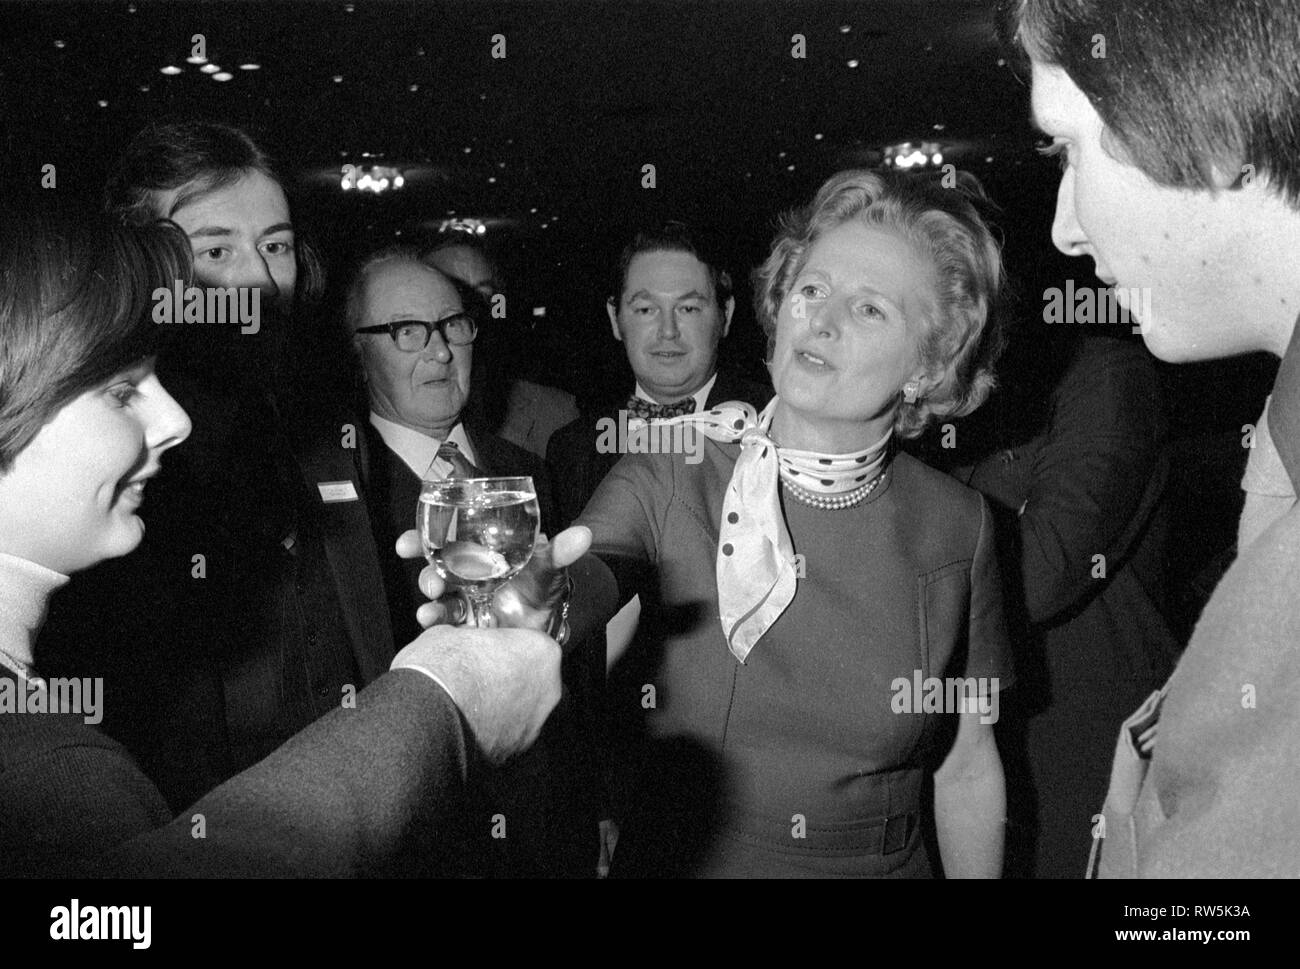 Margaret Thatcher campaigning for the 1979 General Election in Northampton.  Meeting local Conservative Association members. In background Northampton South tory MP Michael Morris who is now Baron Naseby of Sandy. She is receiving a glass of water. 1970s UK HOMER SYKES - Stock Image